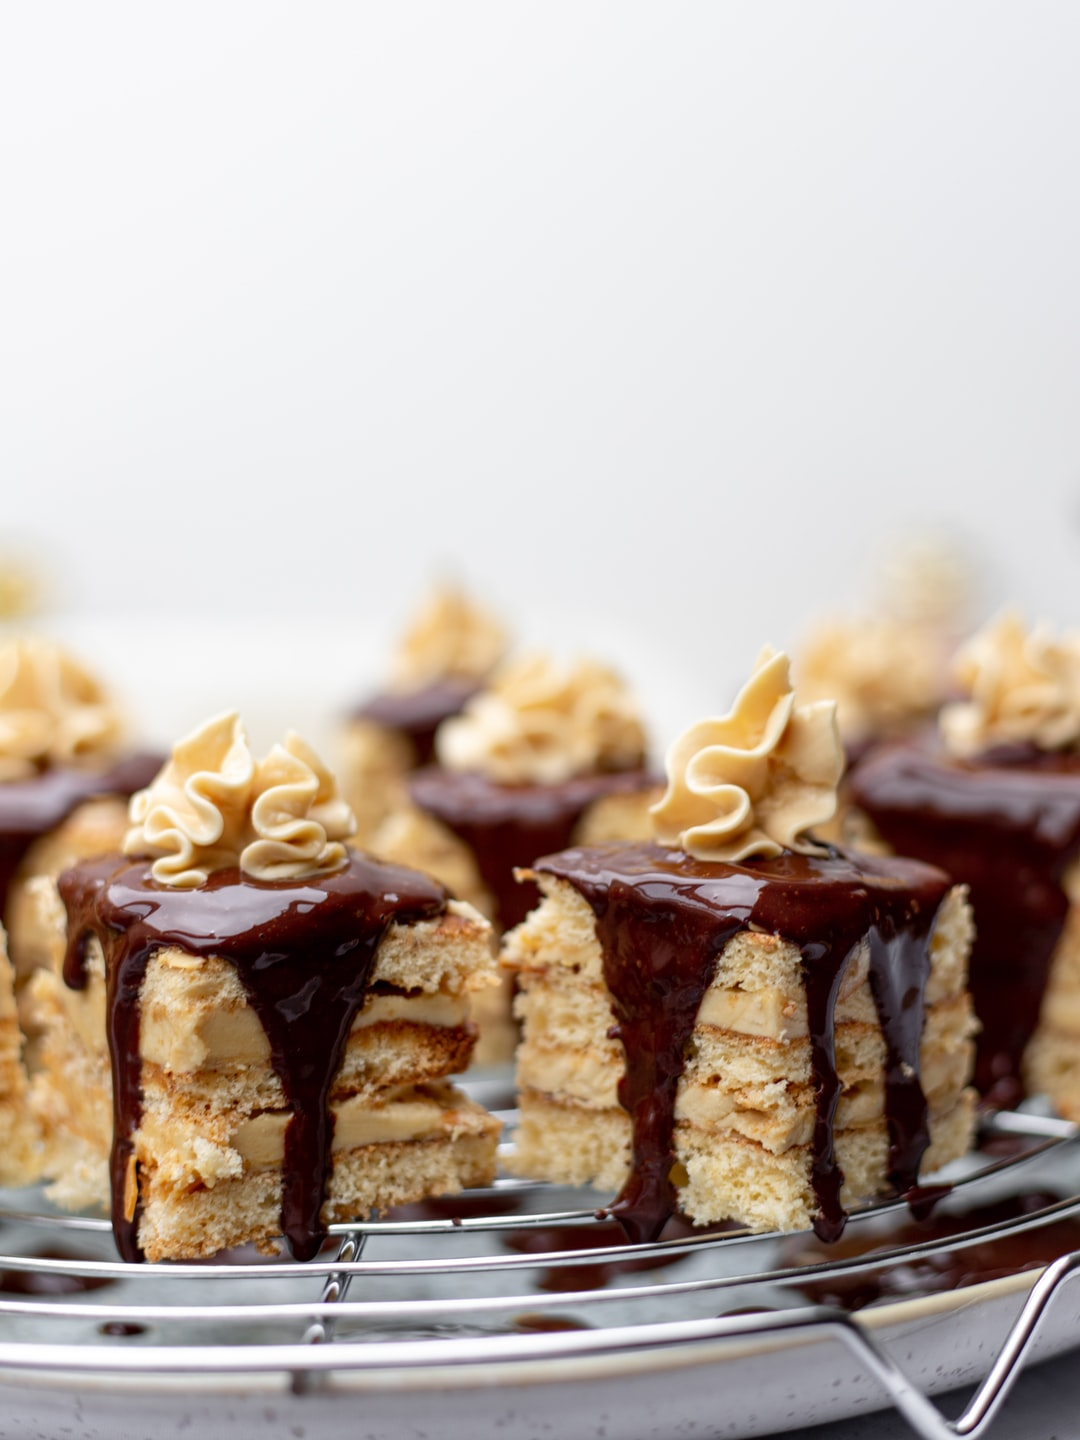 These are delicious petite four made of cinnamon sponge and coffee-infused buttercream.